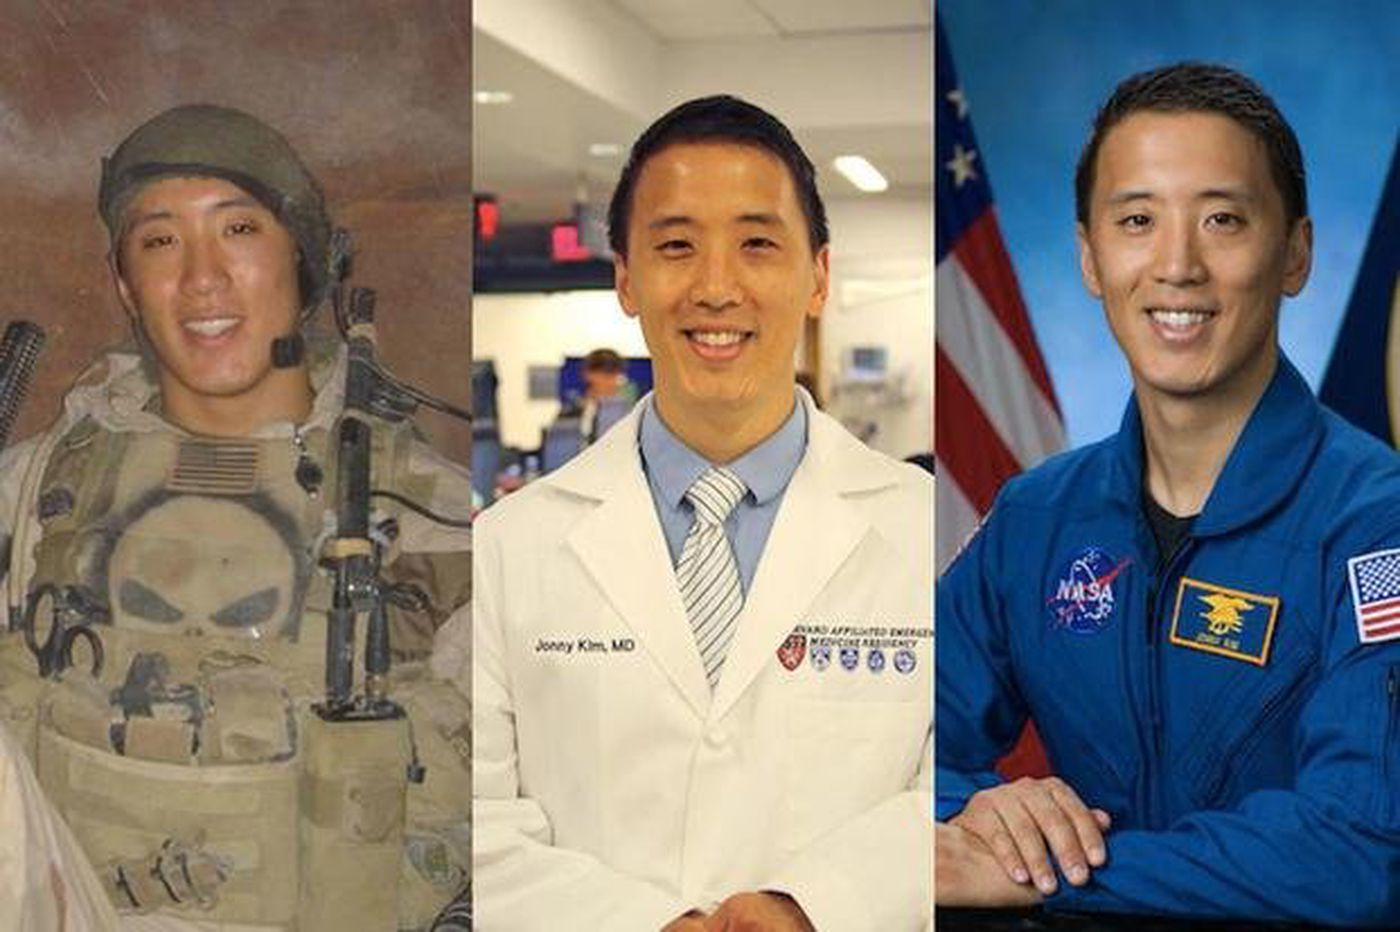 The sky is no limit for this Navy SEAL, doctor, and — now — astronaut